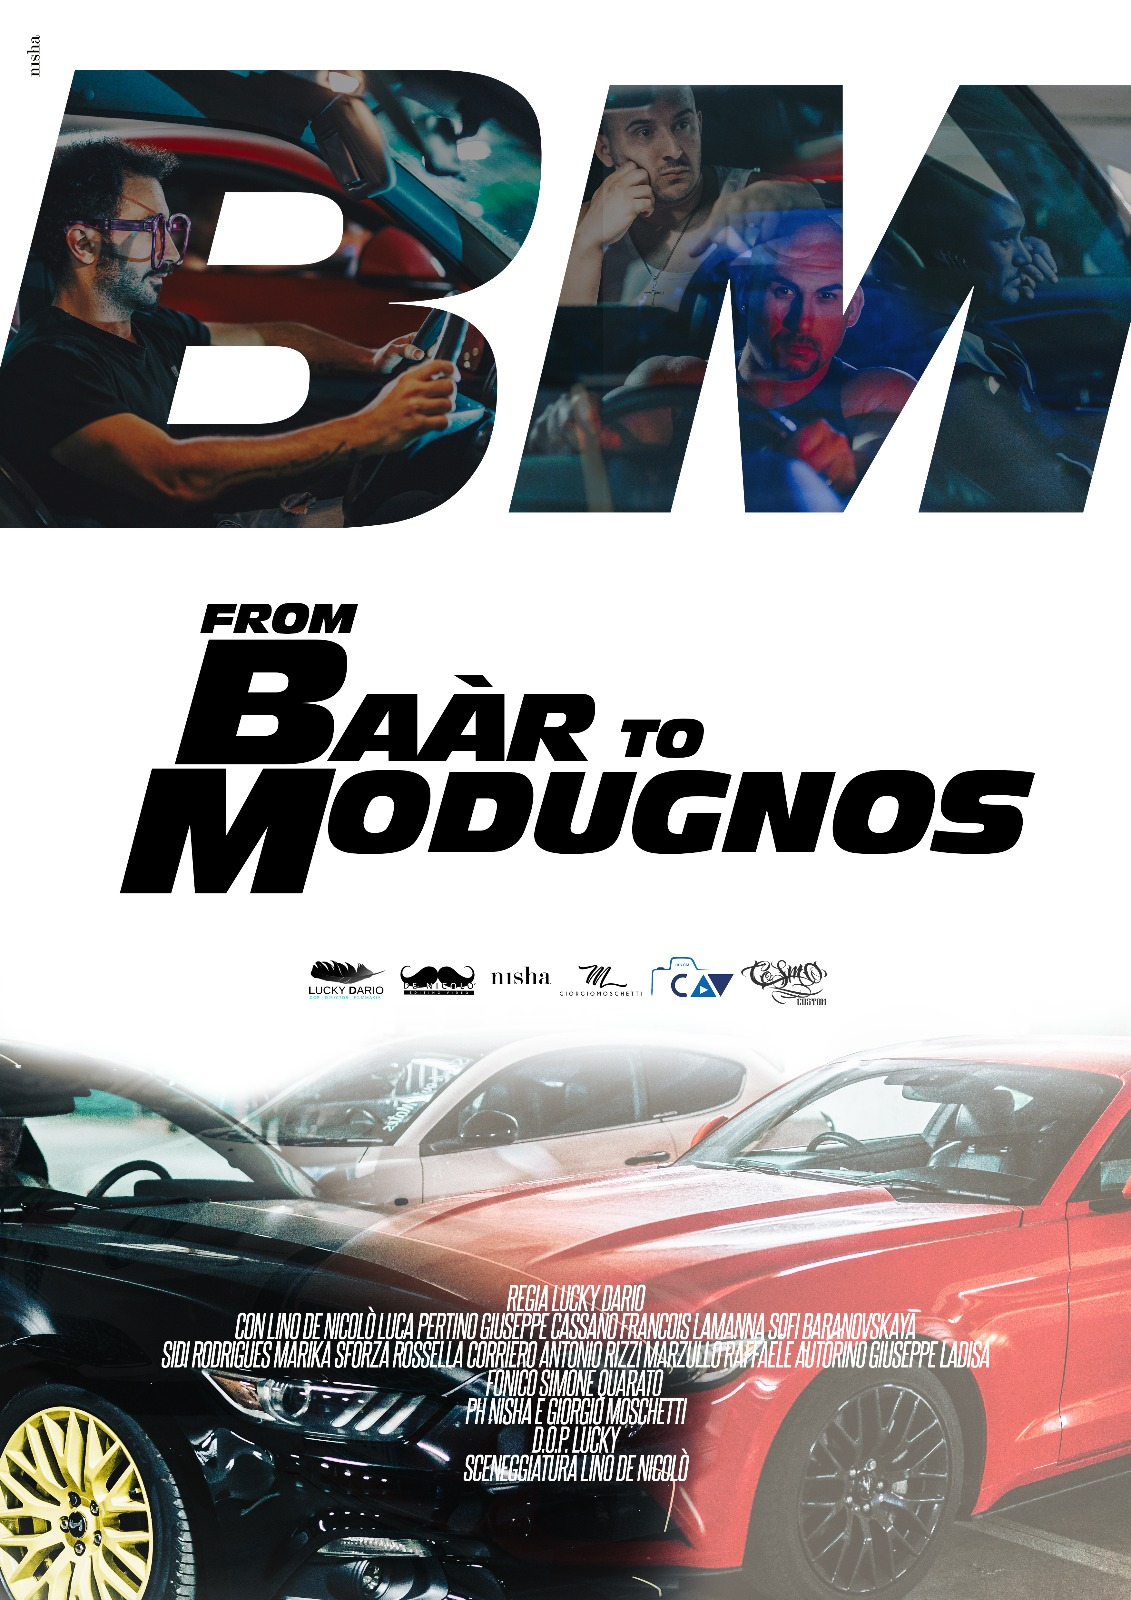 FROM BAAR TO MODUGNOS